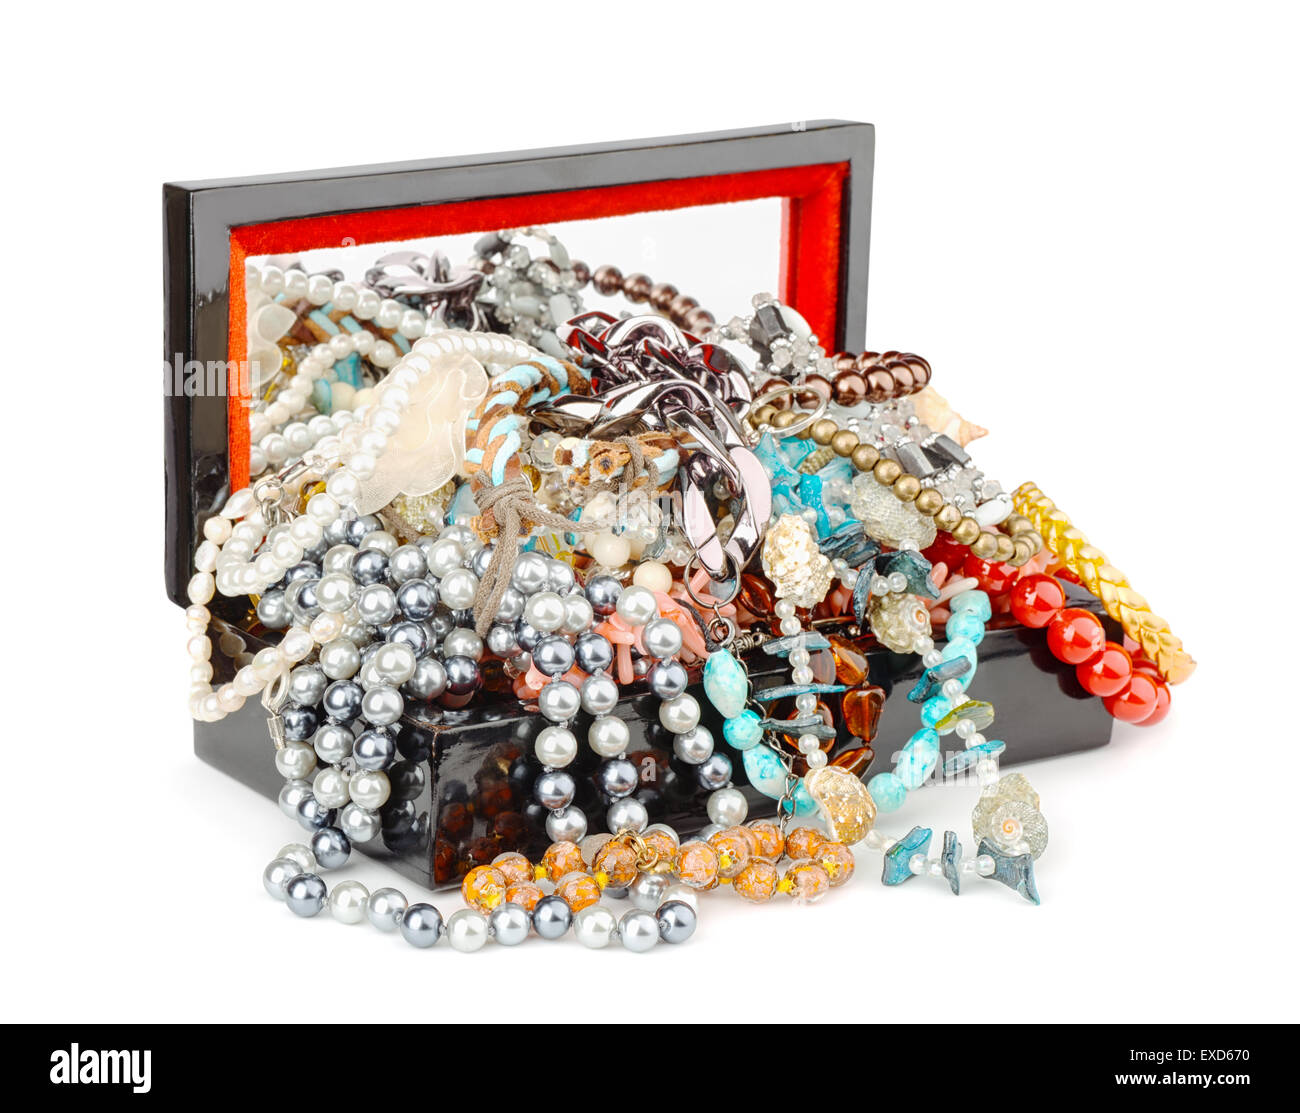 Ouvrir boîte pleine de bijoux isolated on white Photo Stock